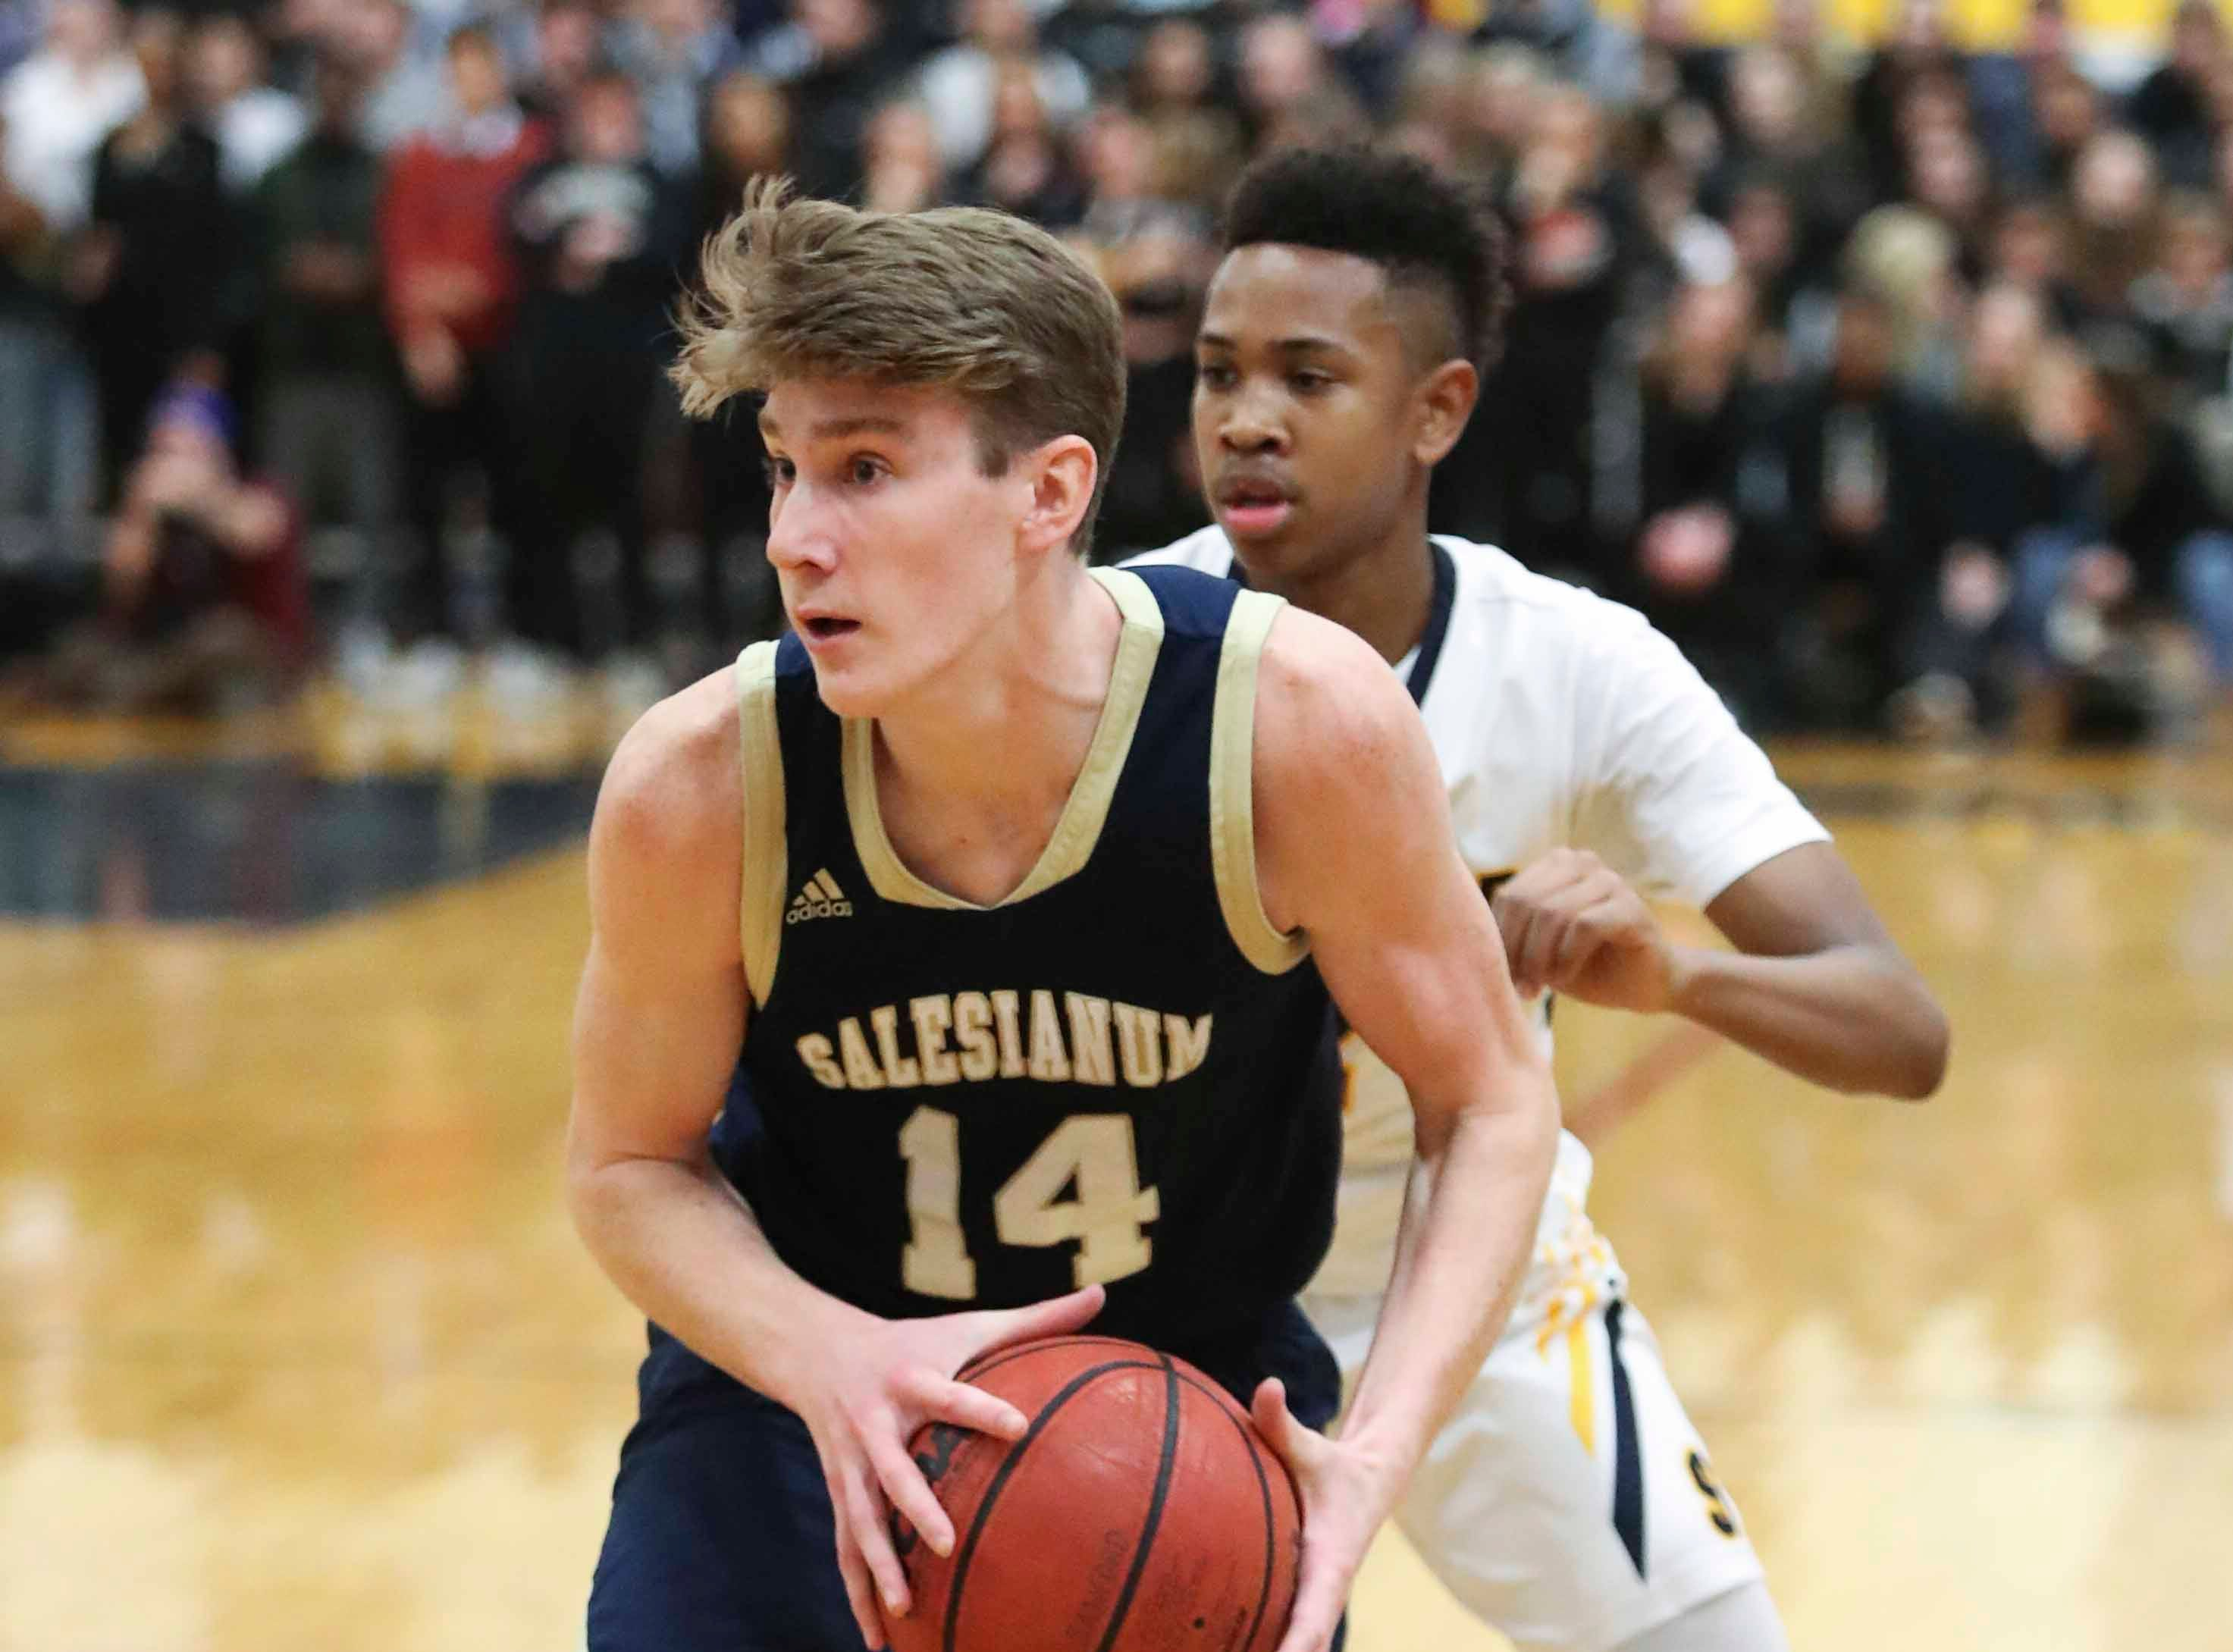 Salesianum's Sean Regan works in front of Sanford's Corey Perkins during the Warriors' 65-47 win at home Friday.